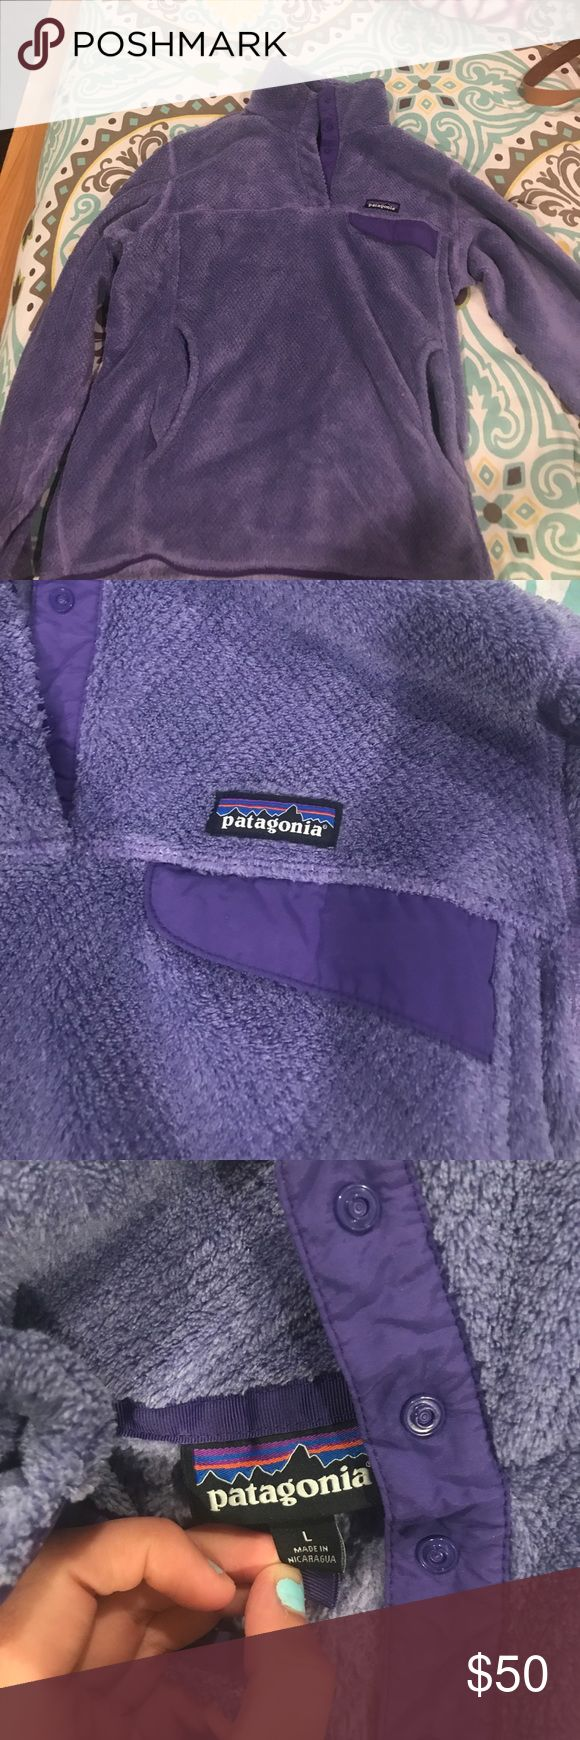 patagonia pullover Purple with buttons at the top, literally worn twice Patagonia Tops Sweatshirts & Hoodies